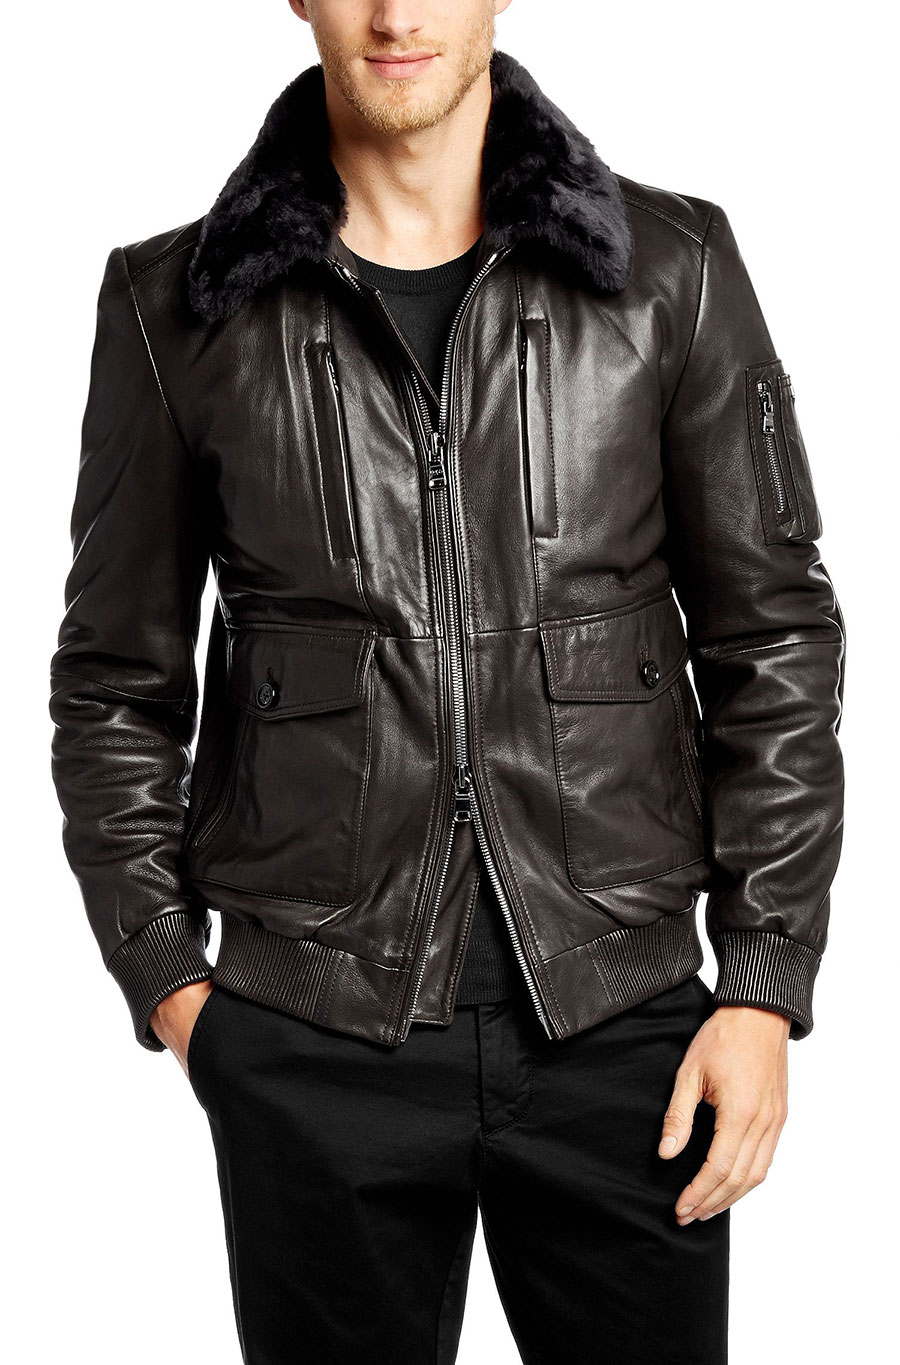 Mille miglia anniversary limited edition leather jacket for Hugo boss mercedes benz jacket